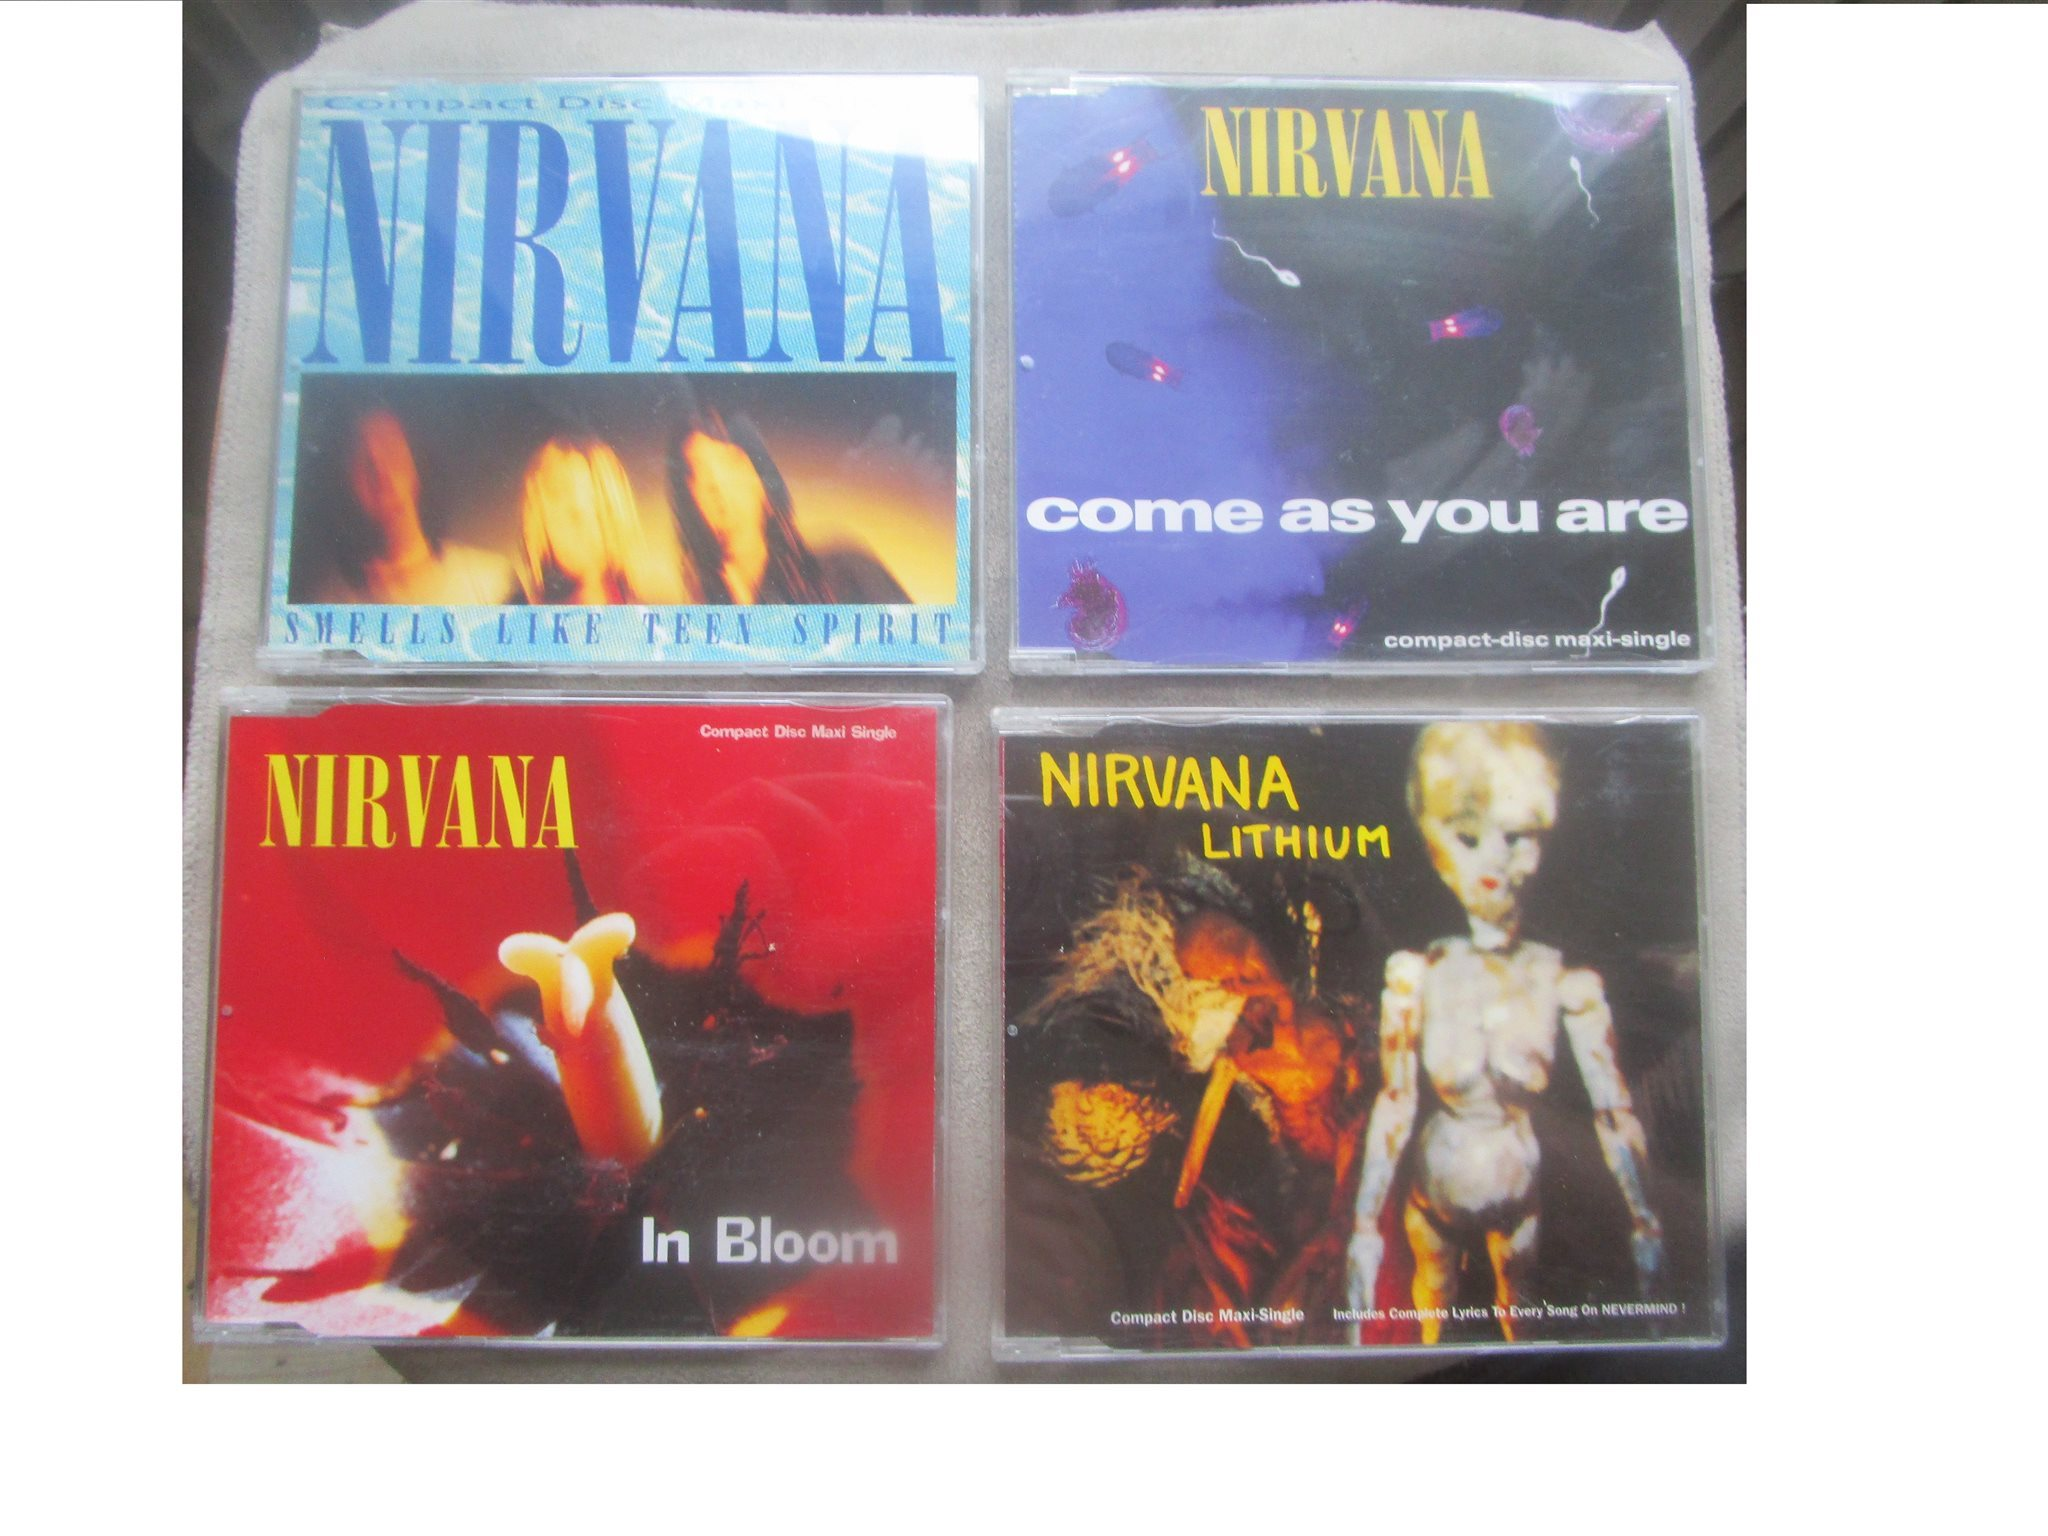 Nirvana: Singles 6 CD-MAXI BOX UTGÅNGEN 1995